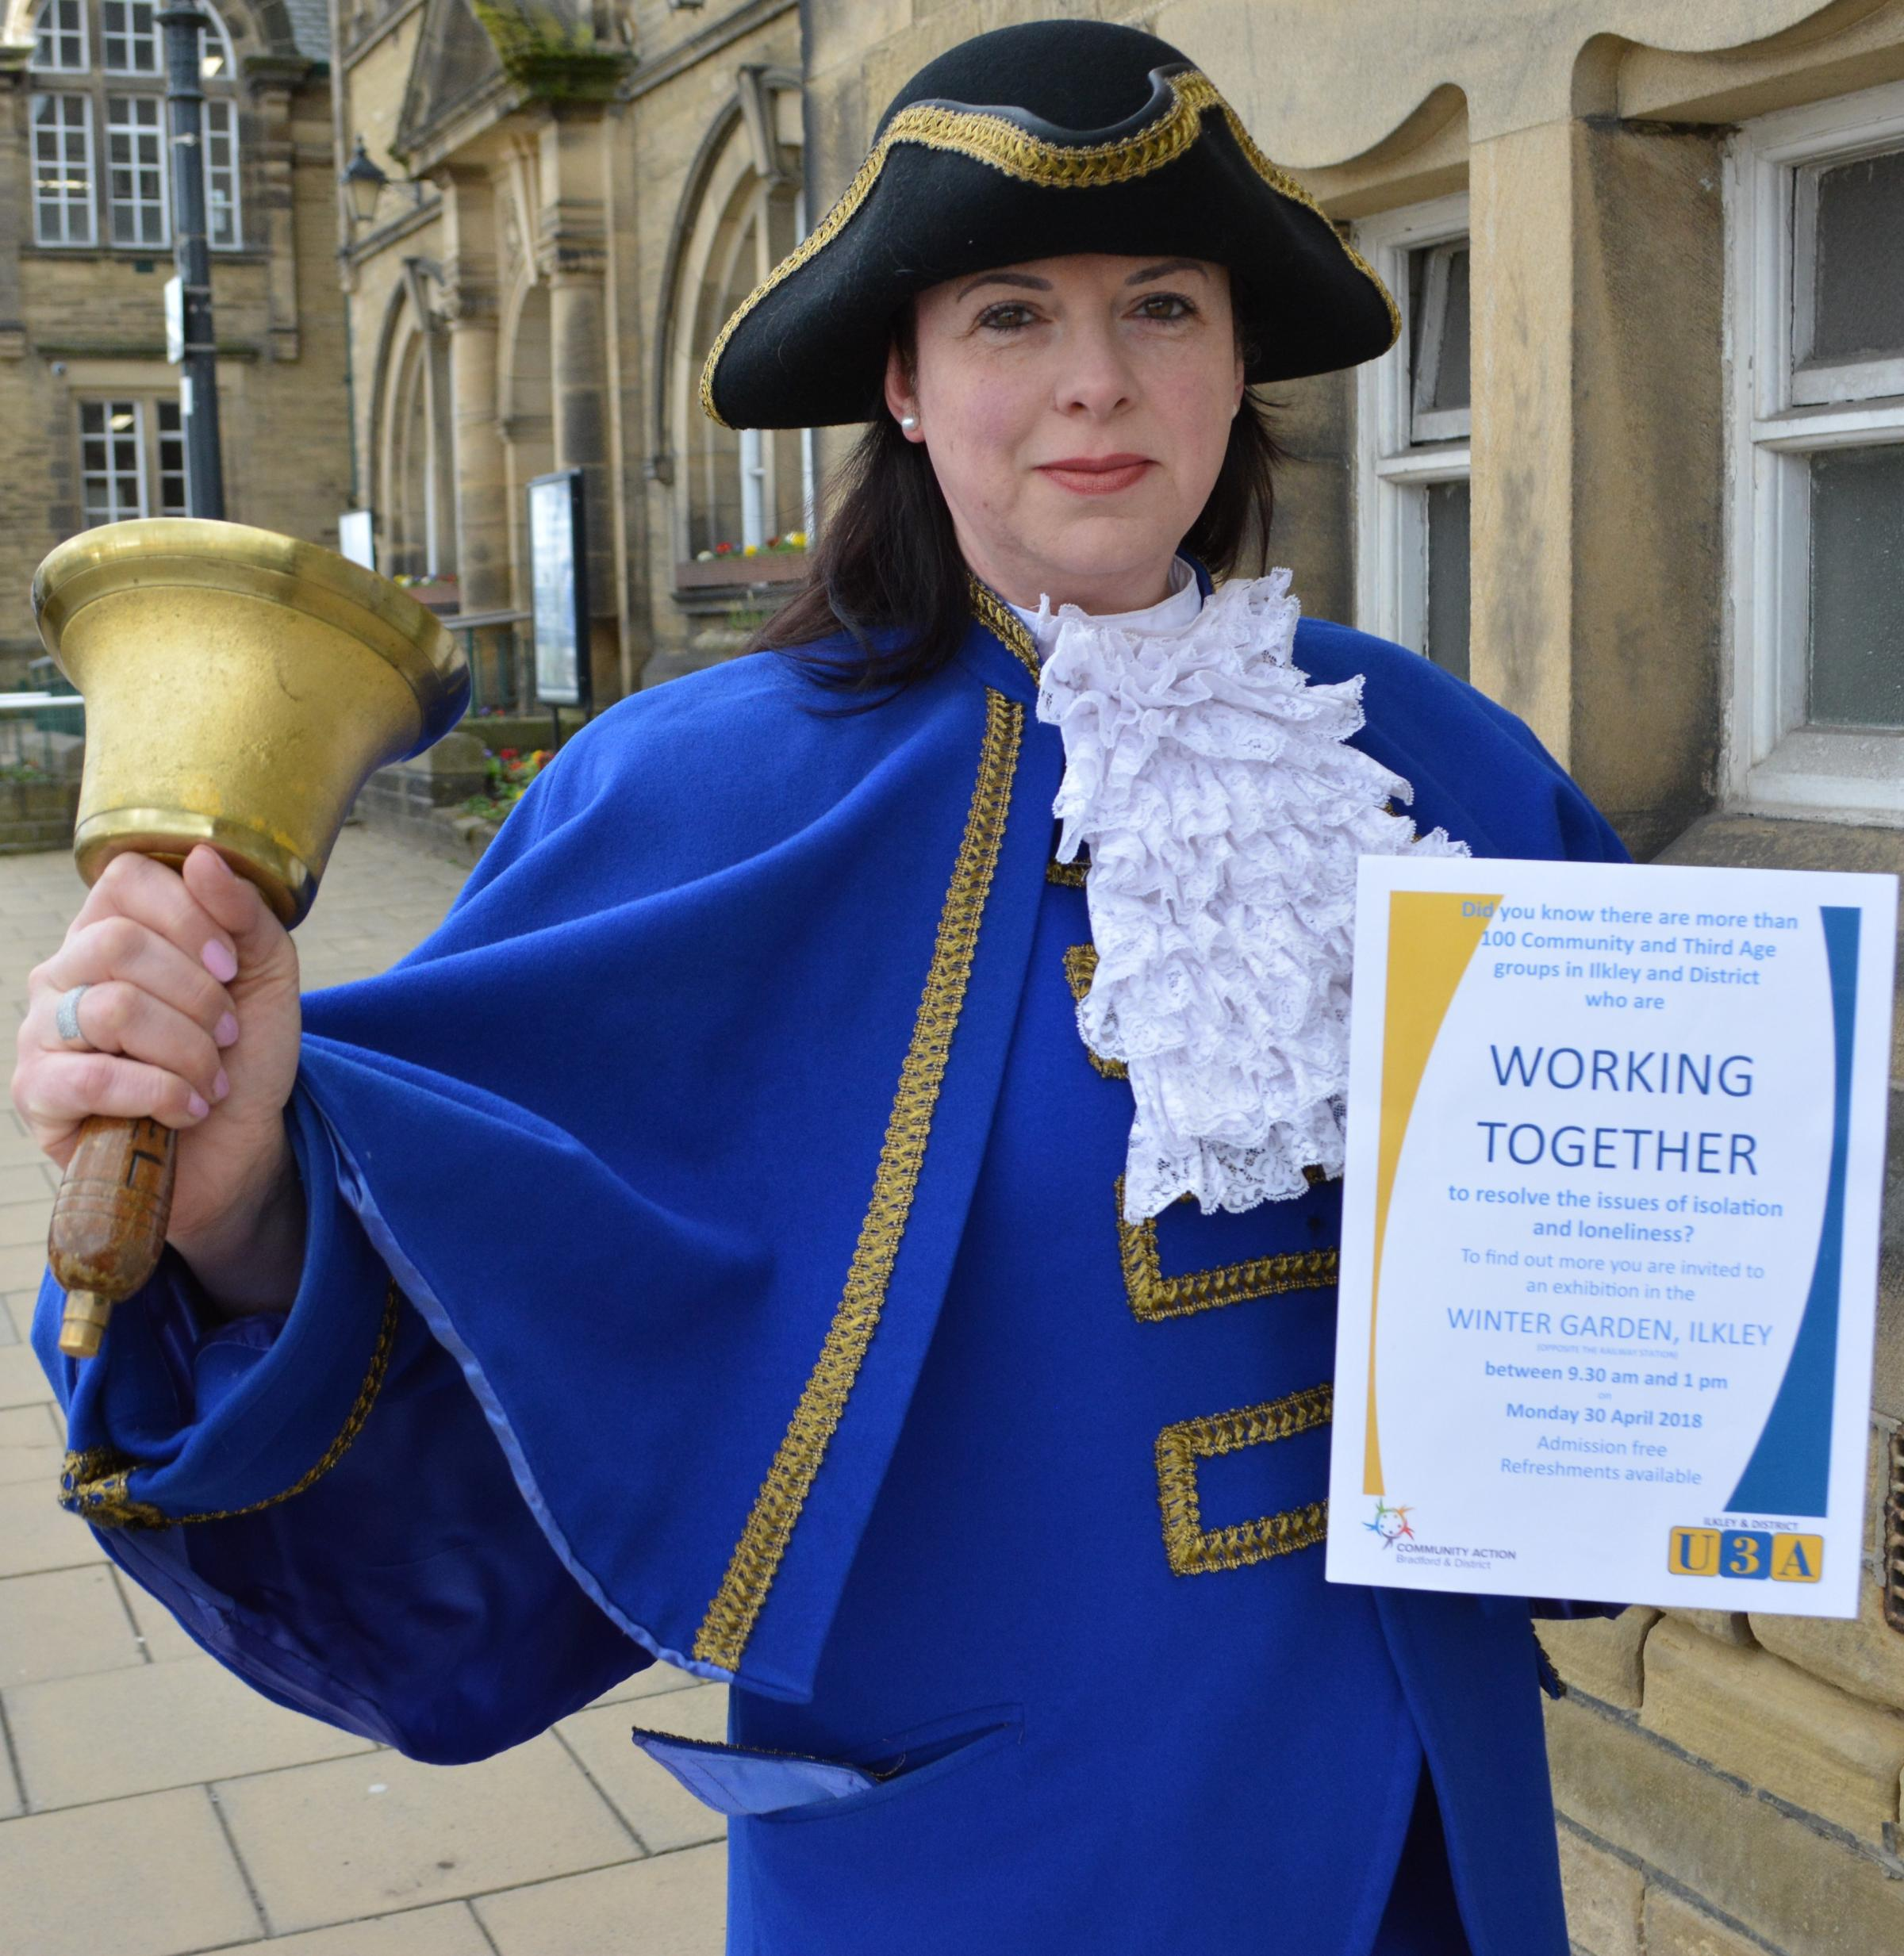 Ilkley Town Crier Isabel Ashman publicising a forthcoming exhibition aimed at tackling social isolation